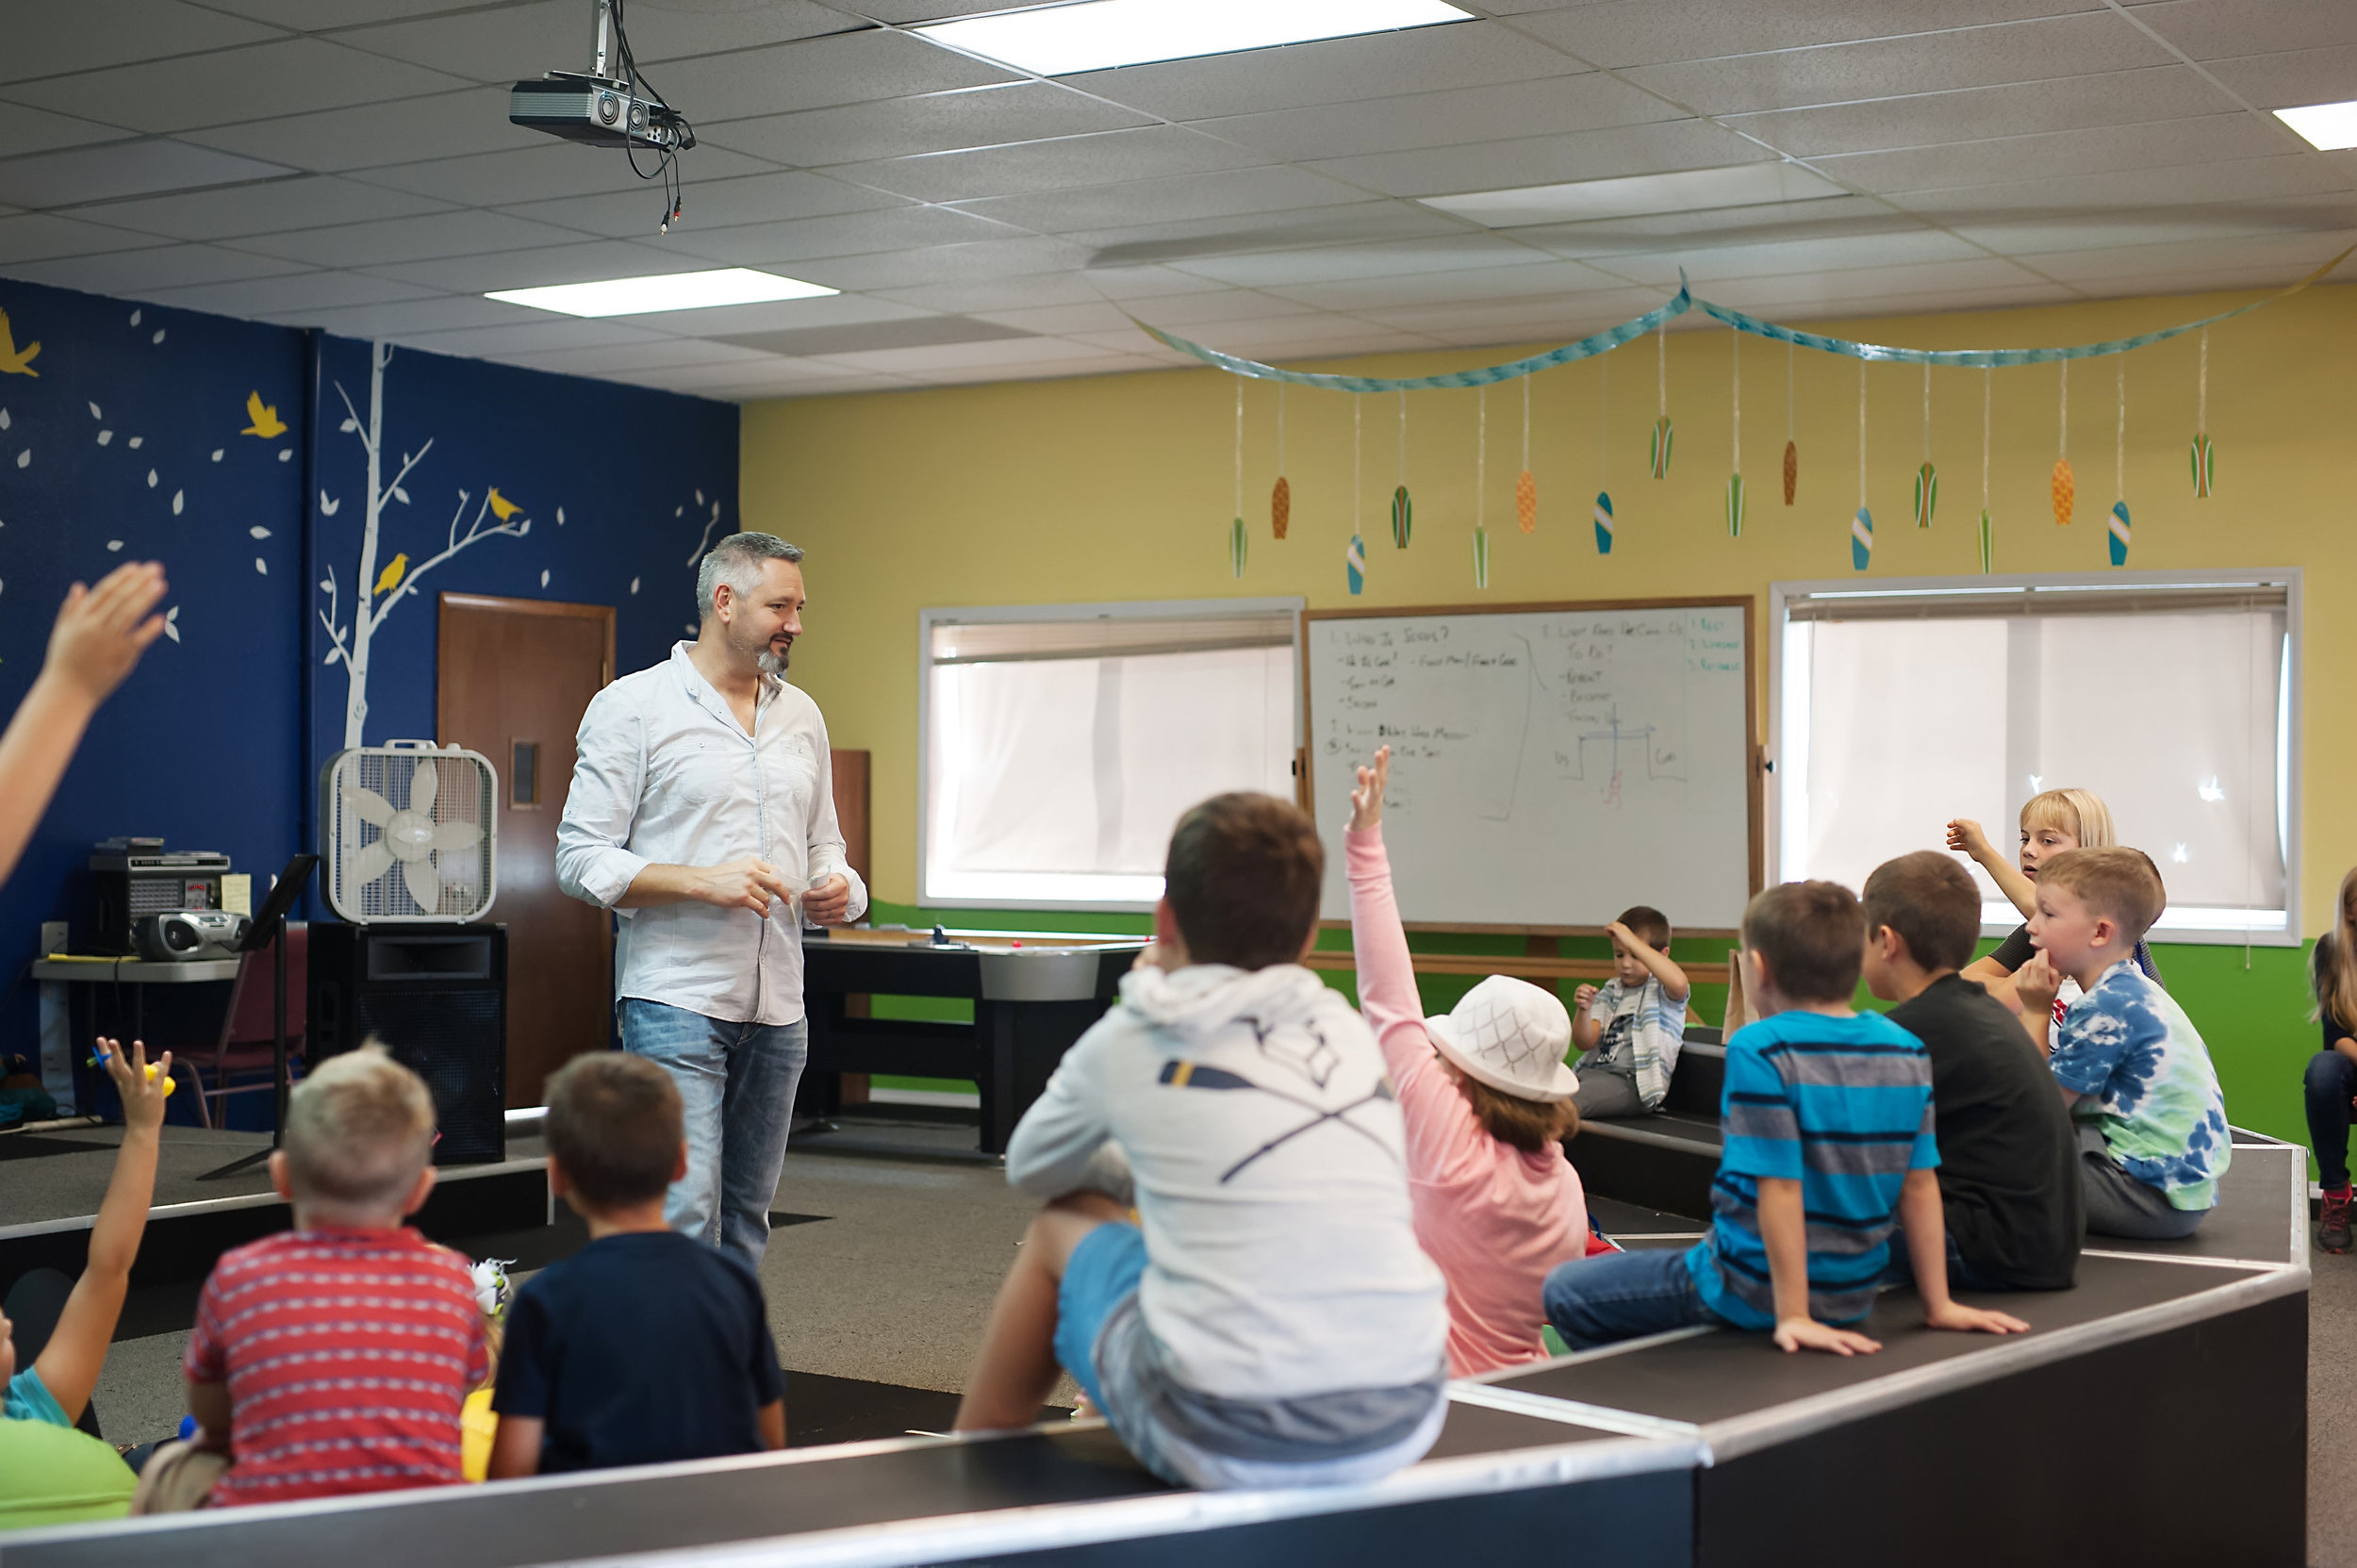 What is there for kids? - We have a great kids' program (C3 Kids) for children from birth through 5th grade! Our nursery and toddler rooms are located at the west end of the building, closer to the sanctuary and office areas. Kids in preschool through 5th grade meet in our